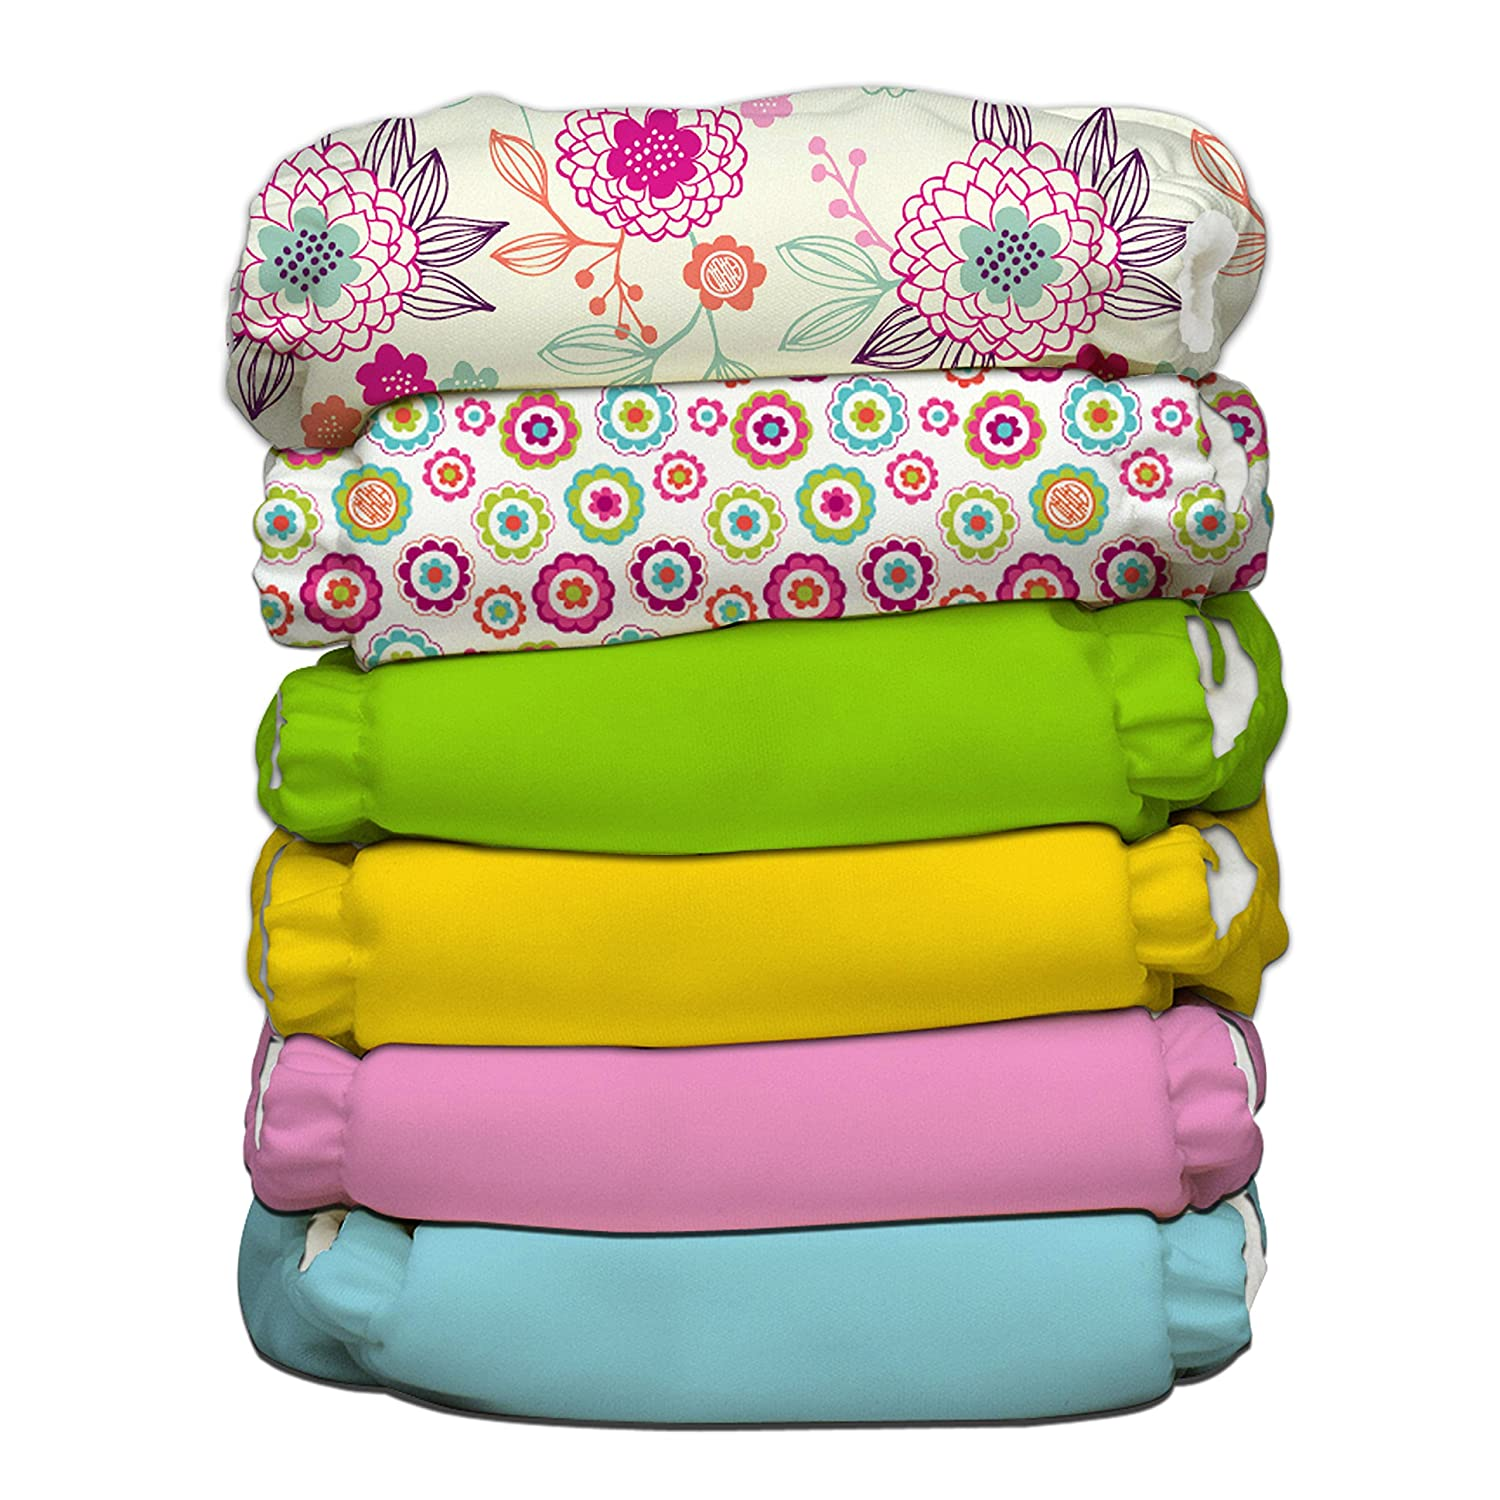 Charlie Banana 6 Diapers 12 Inserts, Organic Dreamy, One Size Winc Design Limited 888196